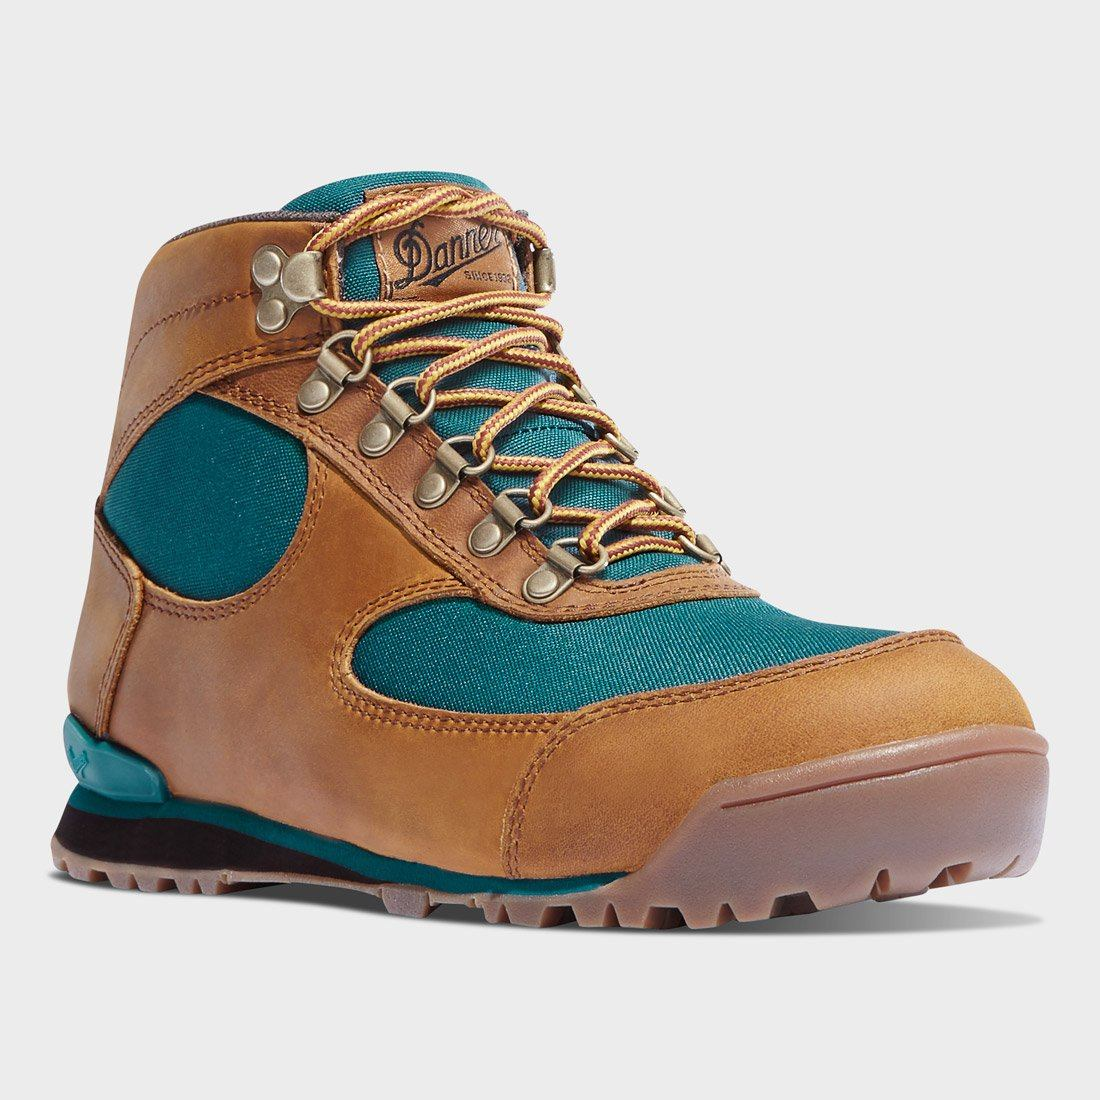 Danner Women's Jag Boot Distressed Brown/ Deep Teal